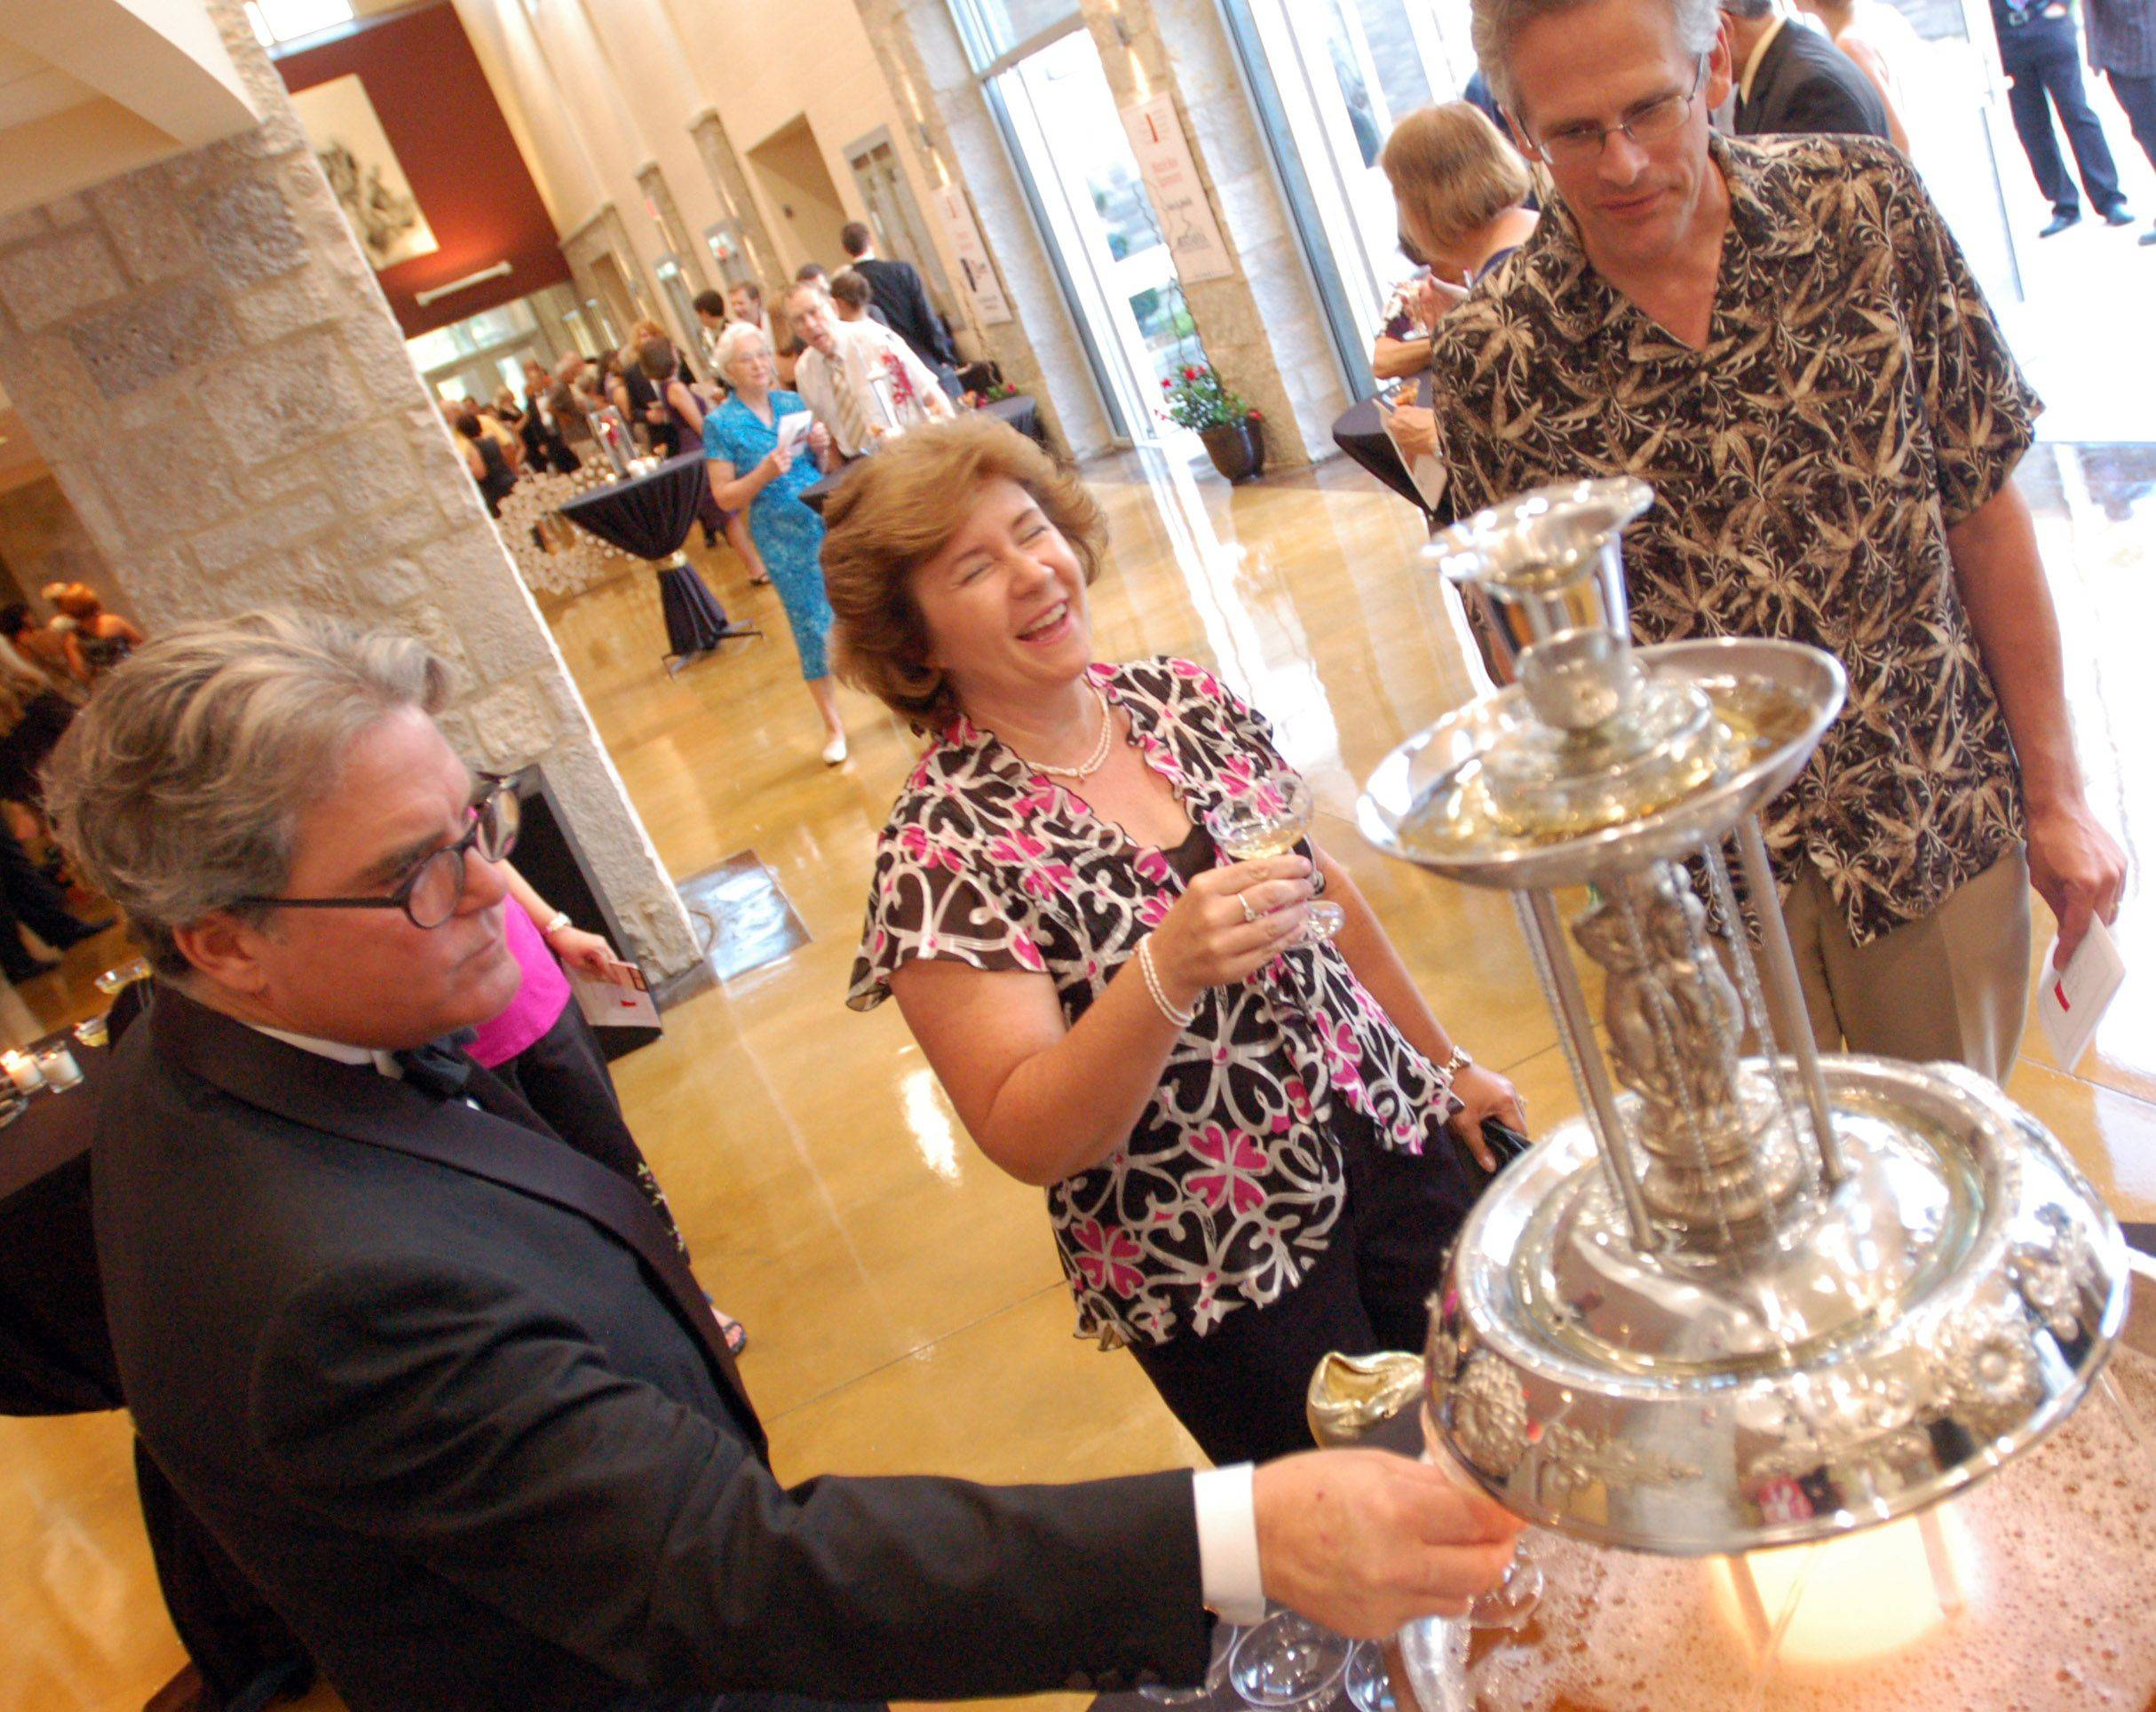 Vincent Gatto of Batavia, left, along with Stephanie Knappe, middle, and her husband, Ed Knappe, right, fill their glasses at the refreshment fountain, during the Batavia Fine Arts Centre�s Red Carpet Gala opening on Saturday. The arts center is the school�s first real auditorium, and will also serve as a community center for the city of Batavia.